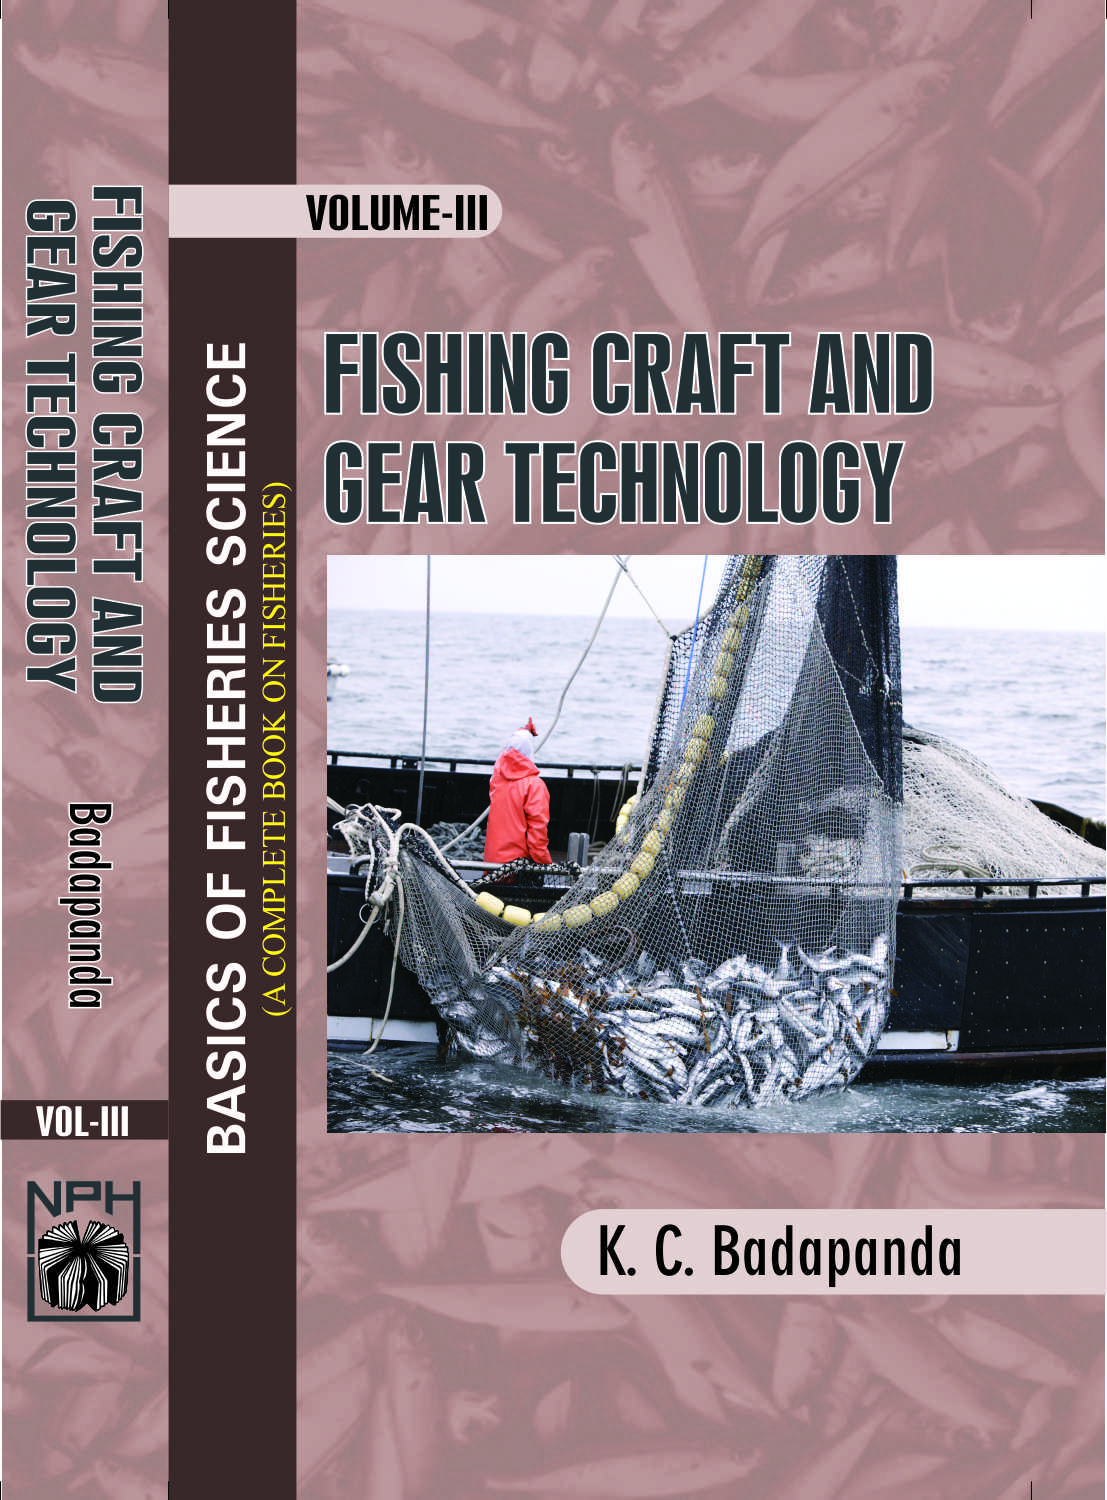 Basics of Fisheries Science : Vol III Fishing Craft & Gear Technology